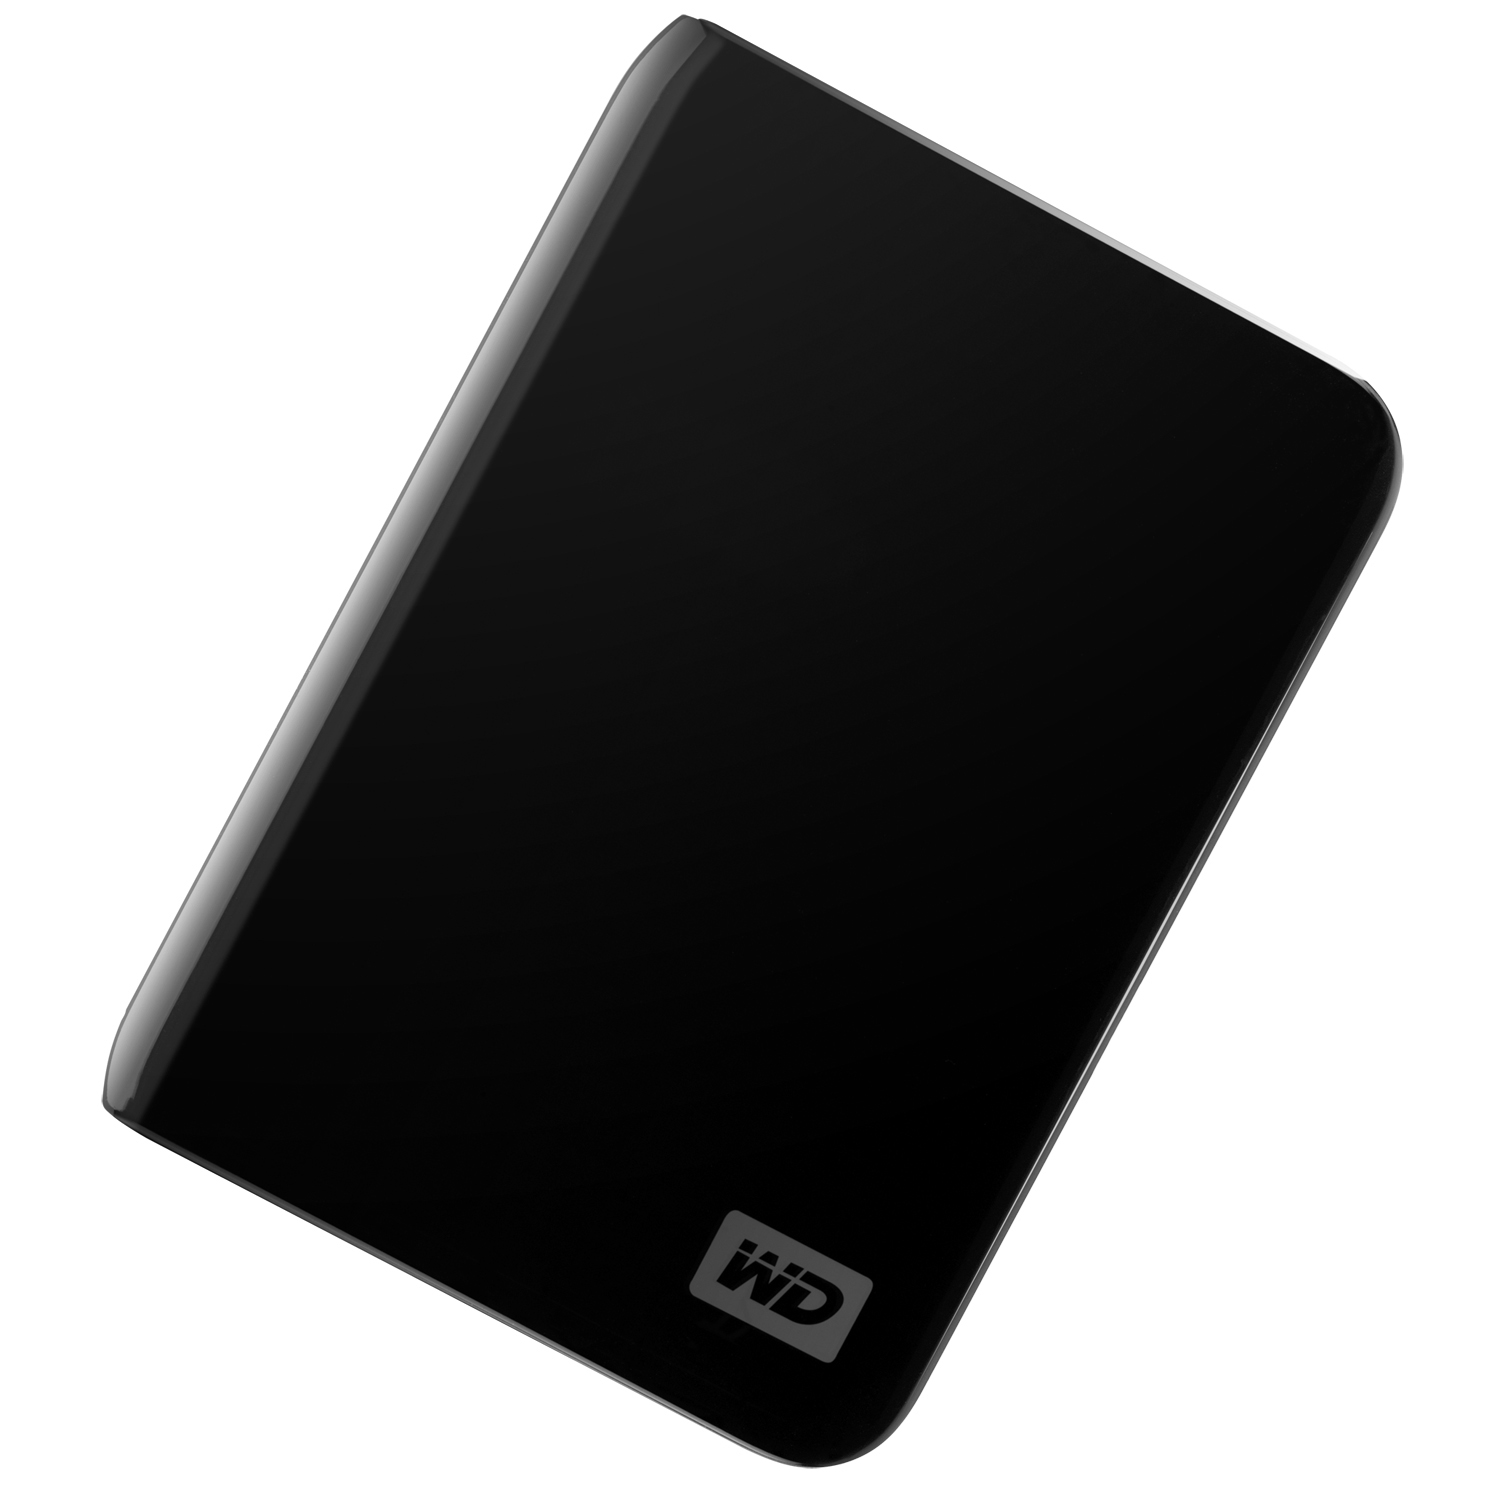 12 Days of Giveaways #10 Two MORE WD 500gb Hard Drives